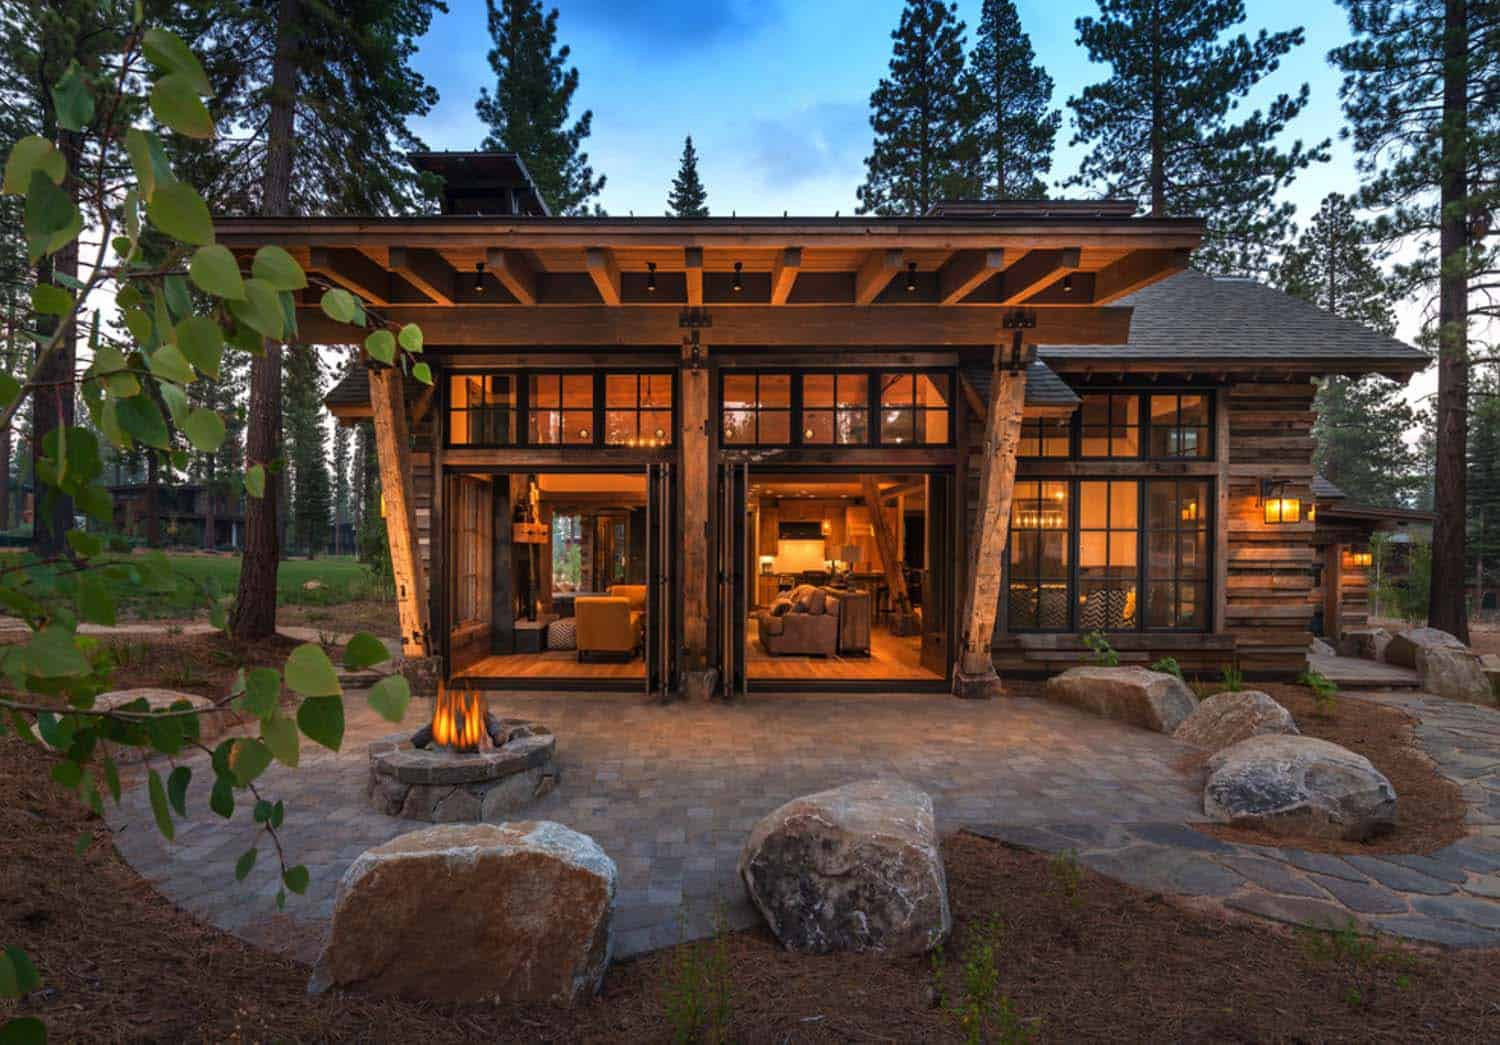 Small Contemporary Mountain Home Plans: Cozy Mountain Style Cabin Getaway In Martis Camp, California